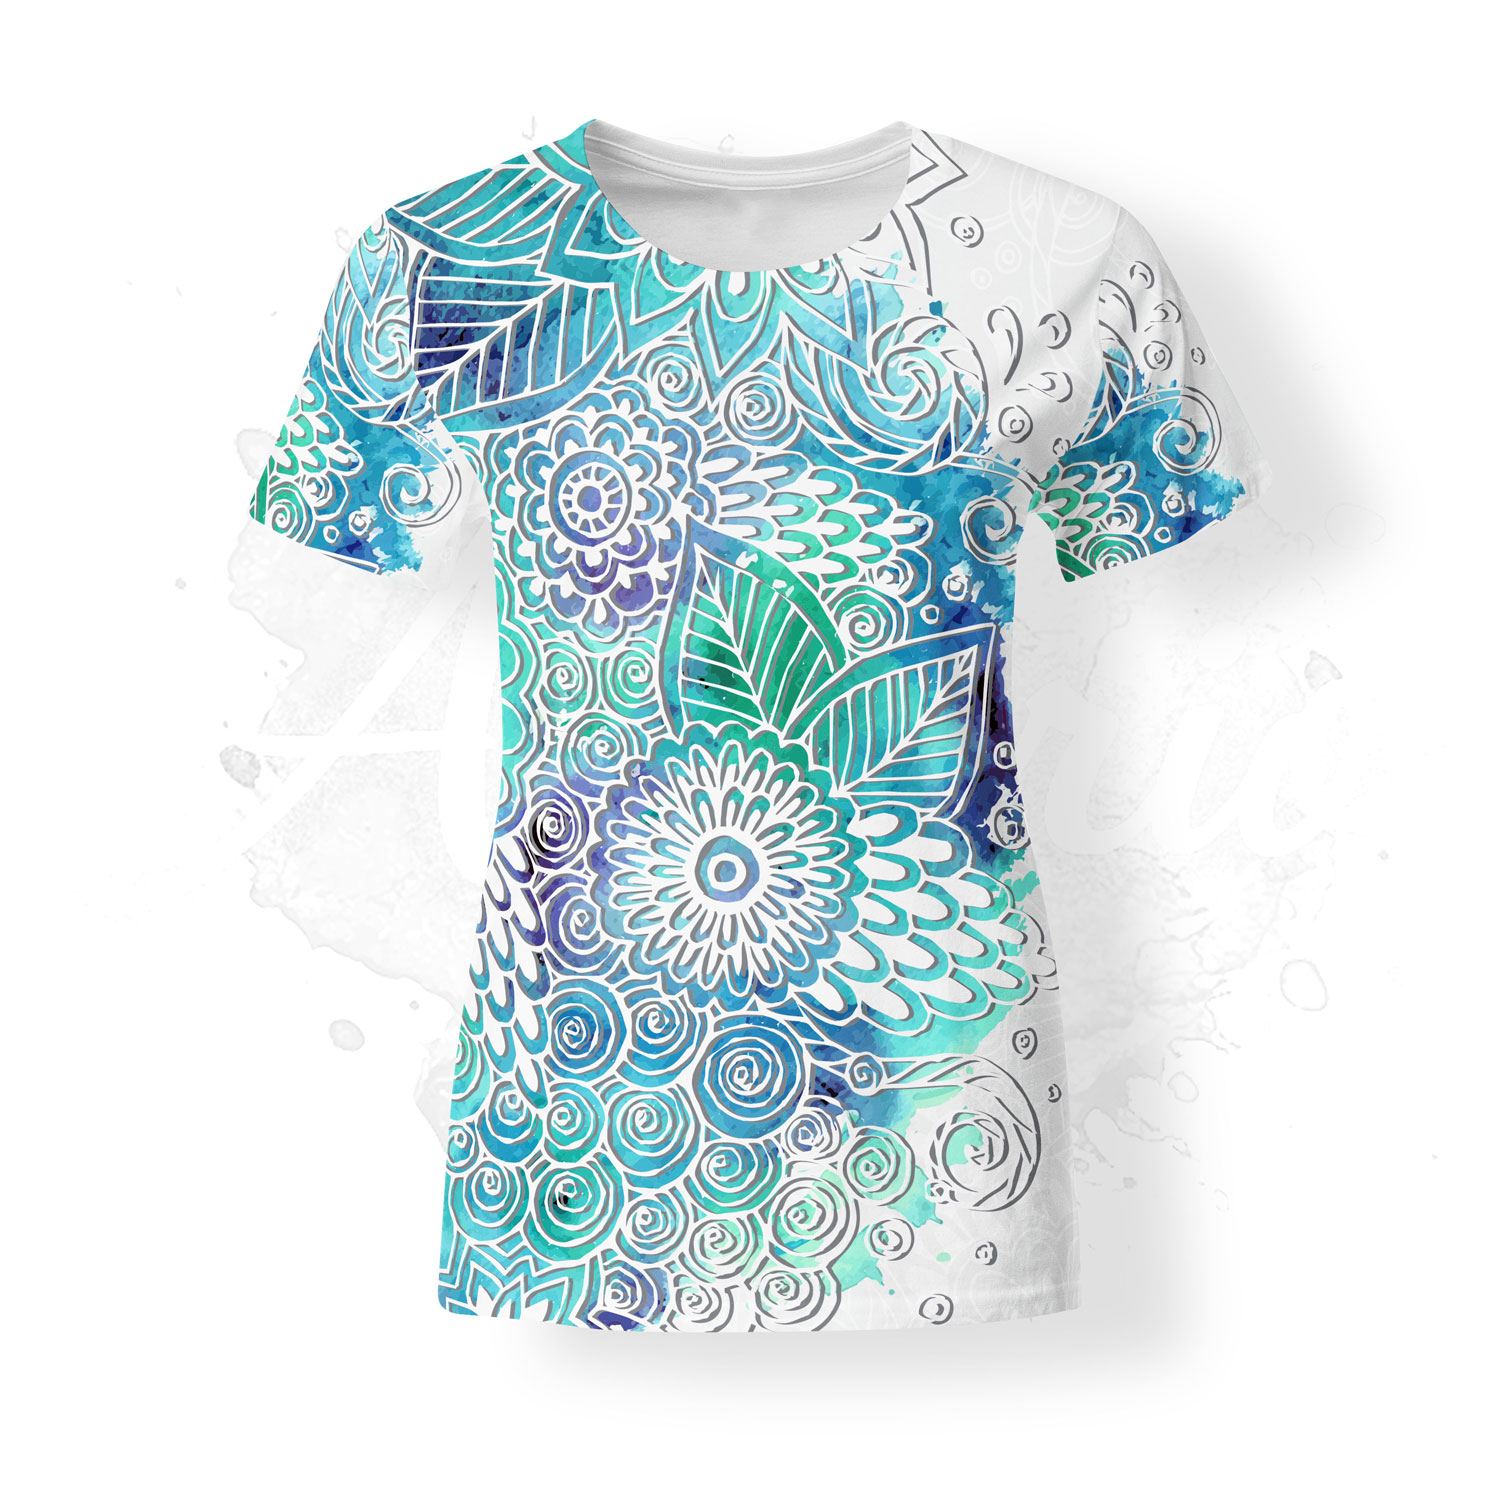 T-Shirt for women, Julia Snegireva, Feather, blue, white, chill